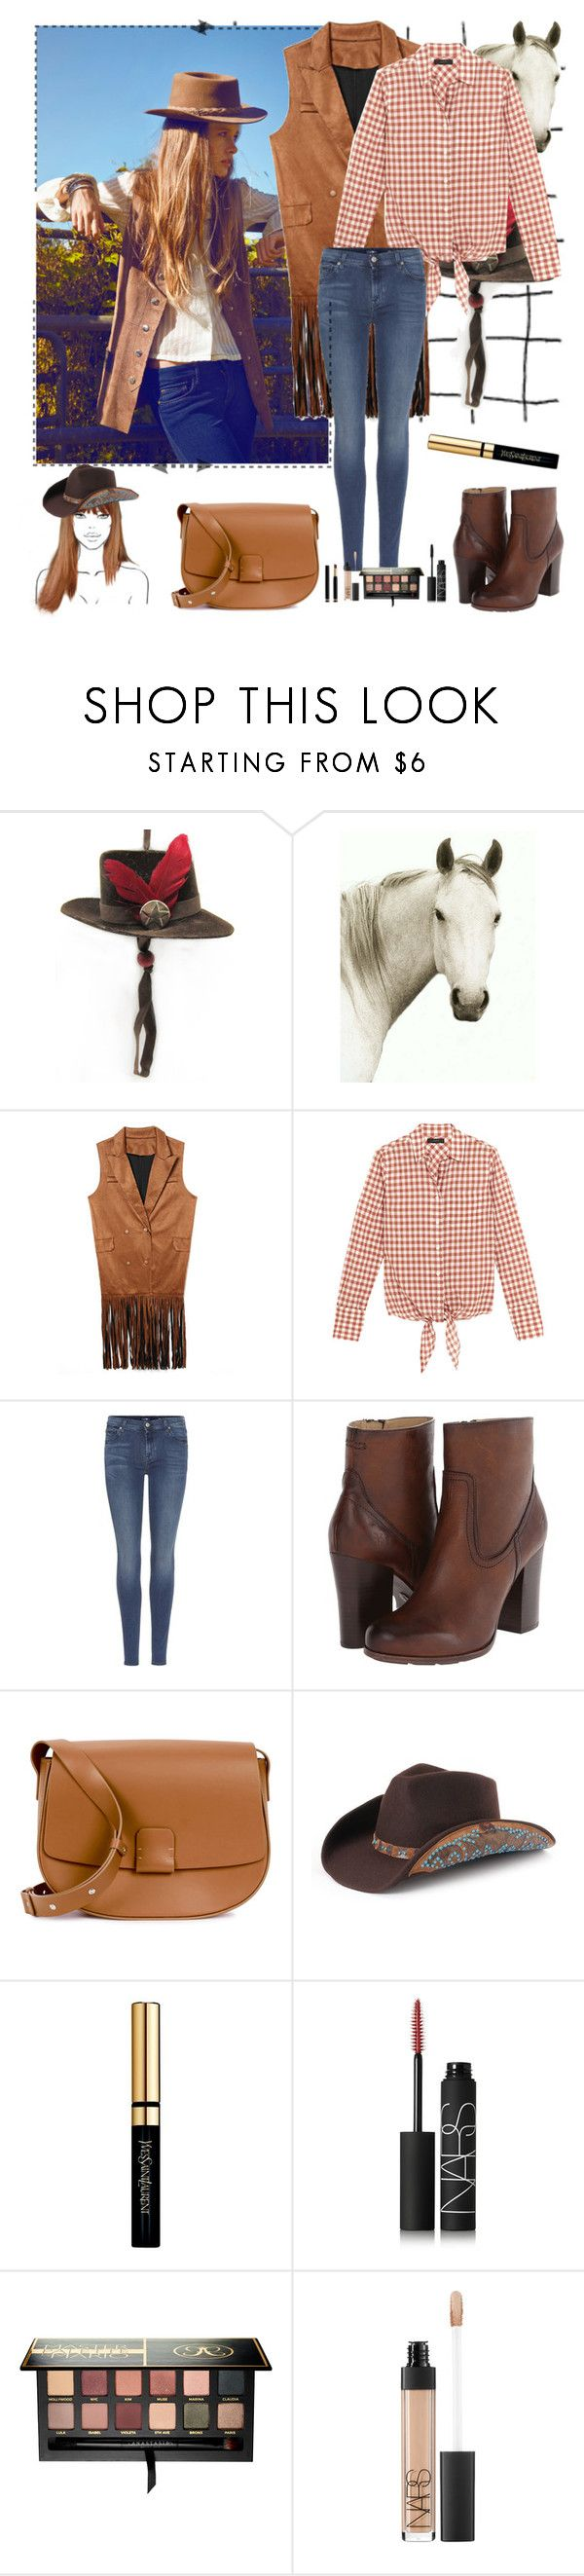 """""""- cowboy."""" by a-shaykhina ❤ liked on Polyvore featuring Natural Curiosities, J.Crew, 7 For All Mankind, Frye, Nico Giani, Peter Grimm, Yves Saint Laurent, NARS Cosmetics, Anastasia Beverly Hills and Gucci"""